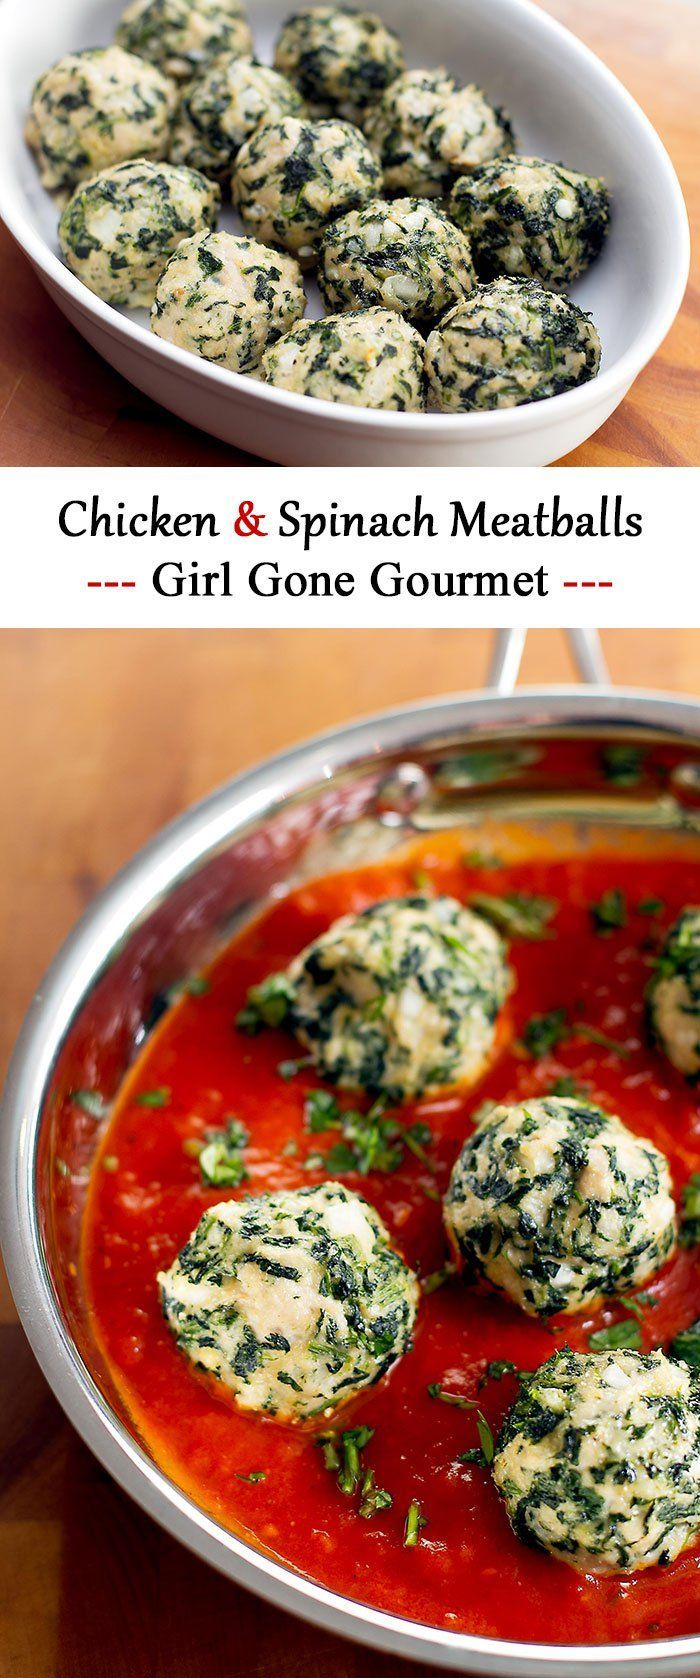 Easy to make chicken and spinach meatballs - perfect with pasta!   girlgonegourmet.com